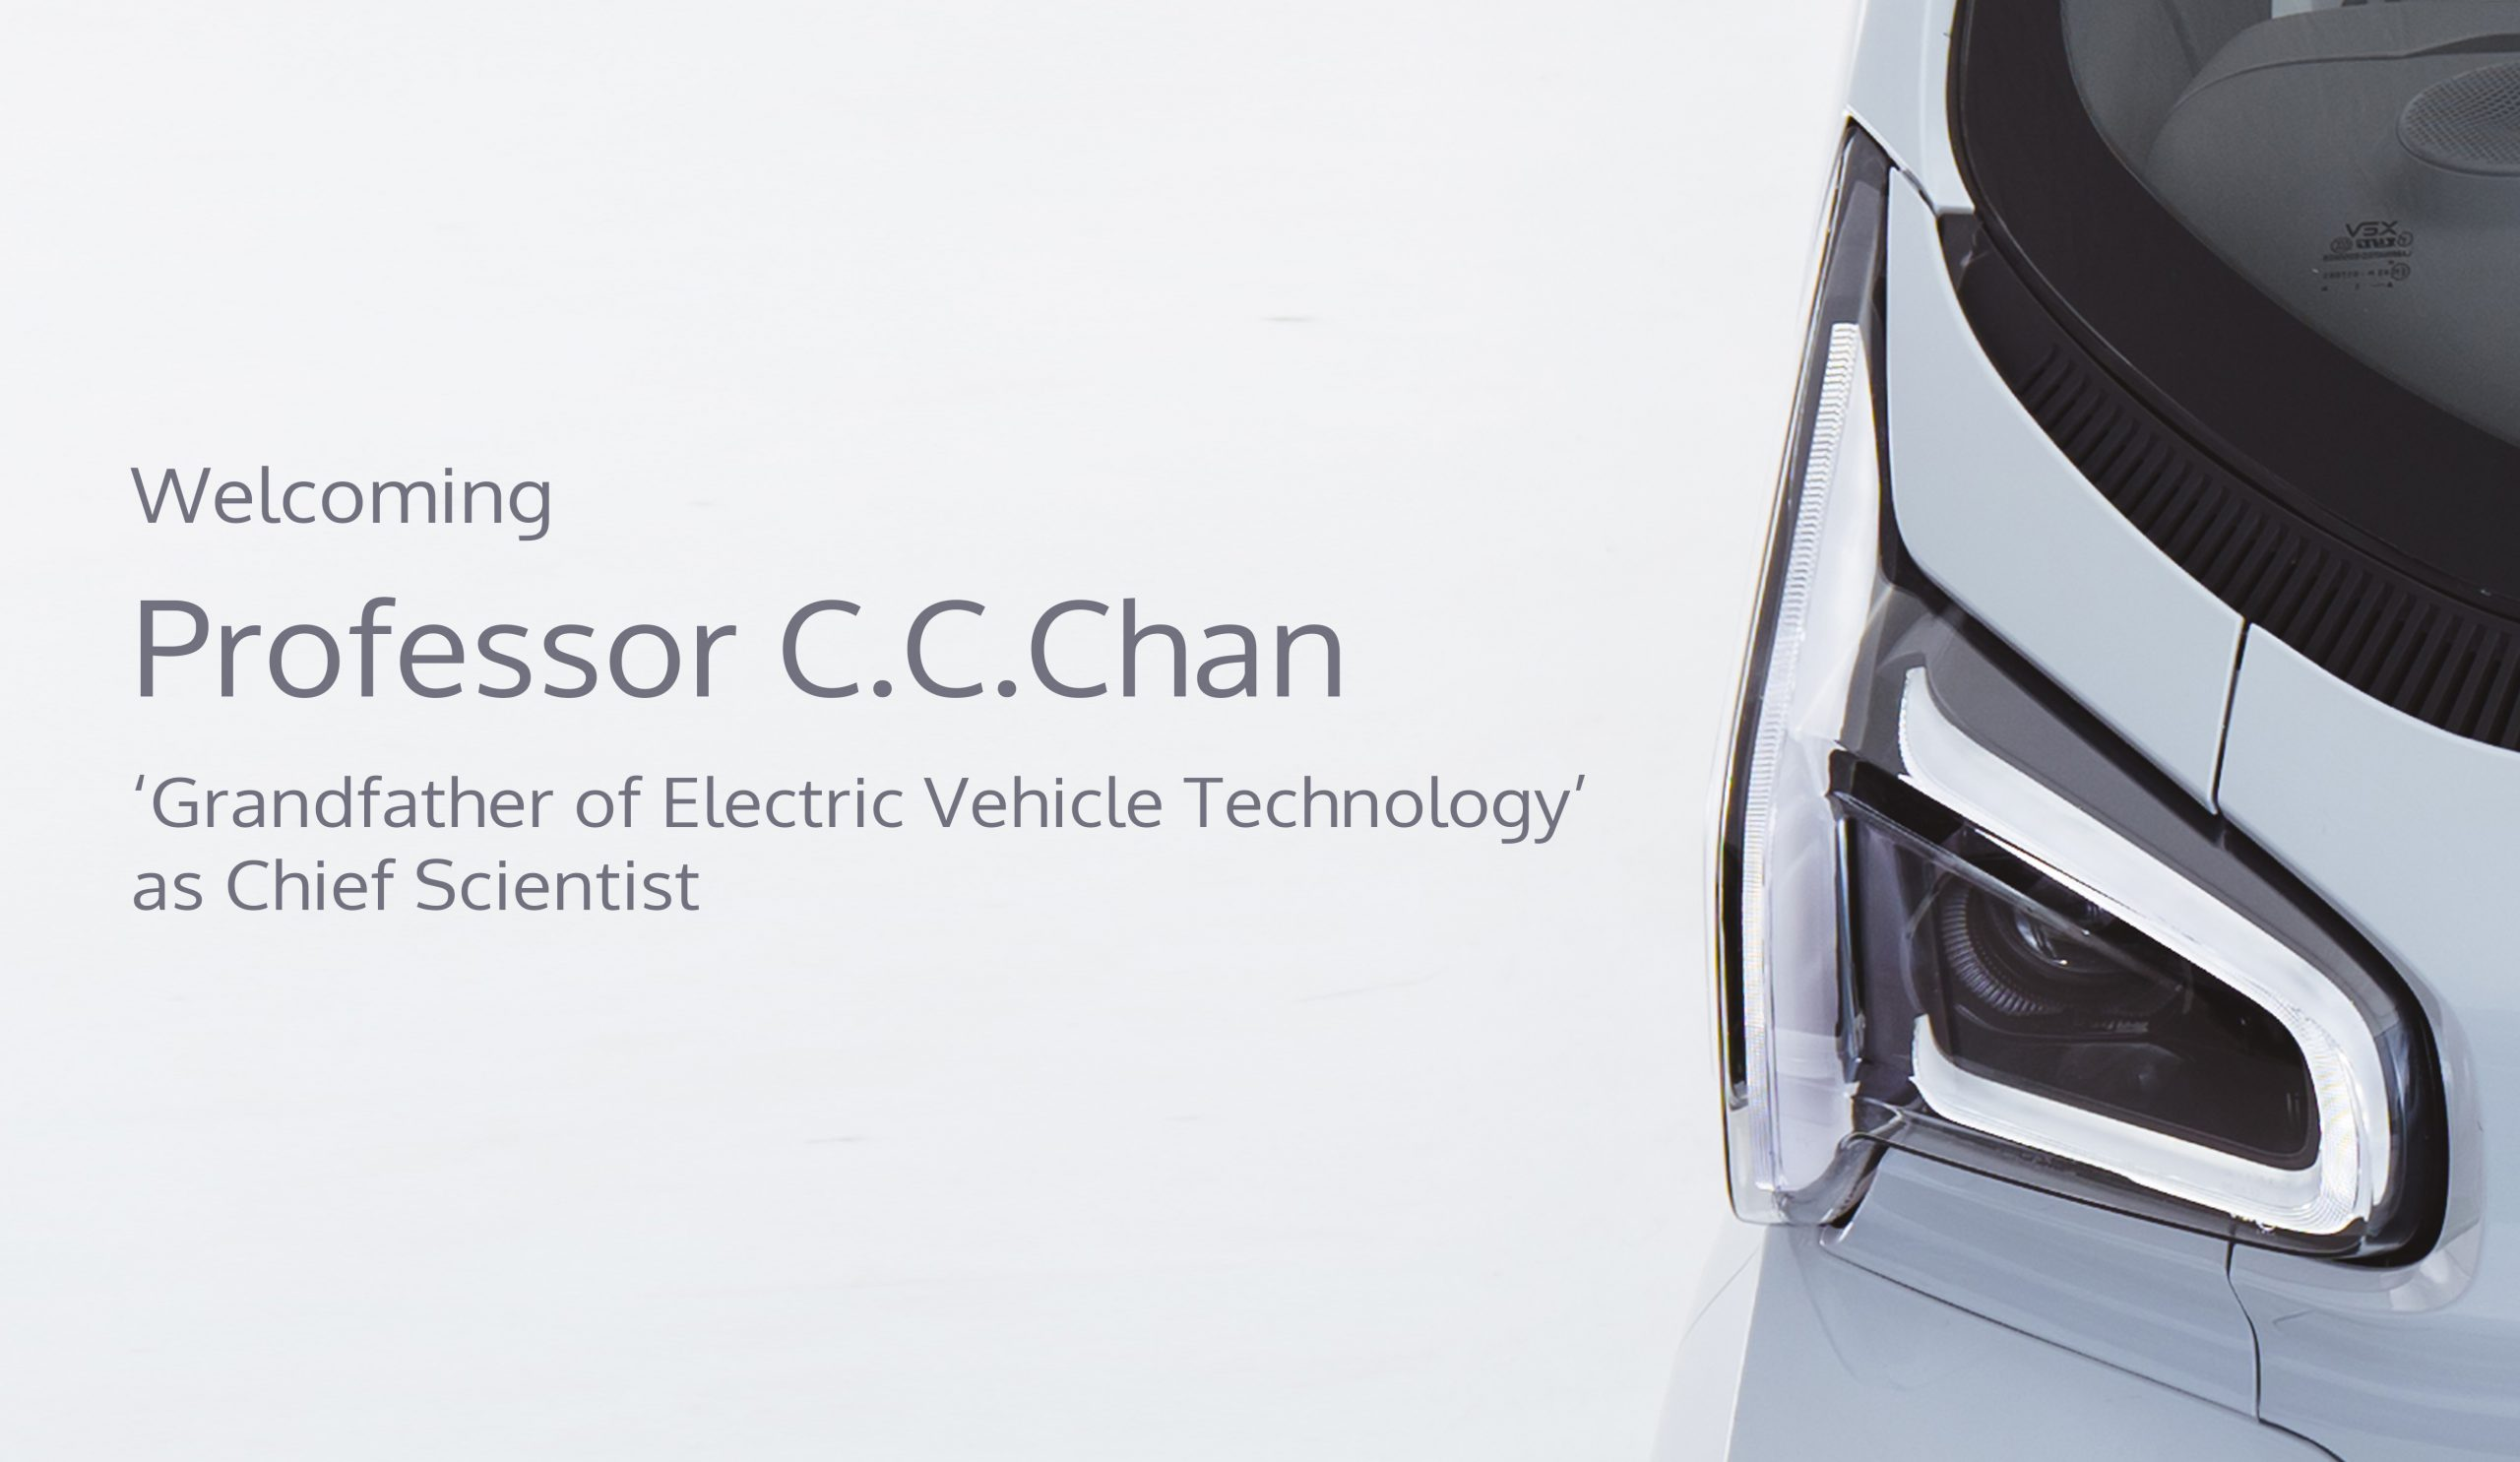 XEV Appoints 'Grandfather of Electric Vehicle Technology' Professor C.C.Chan as Chief Scientist